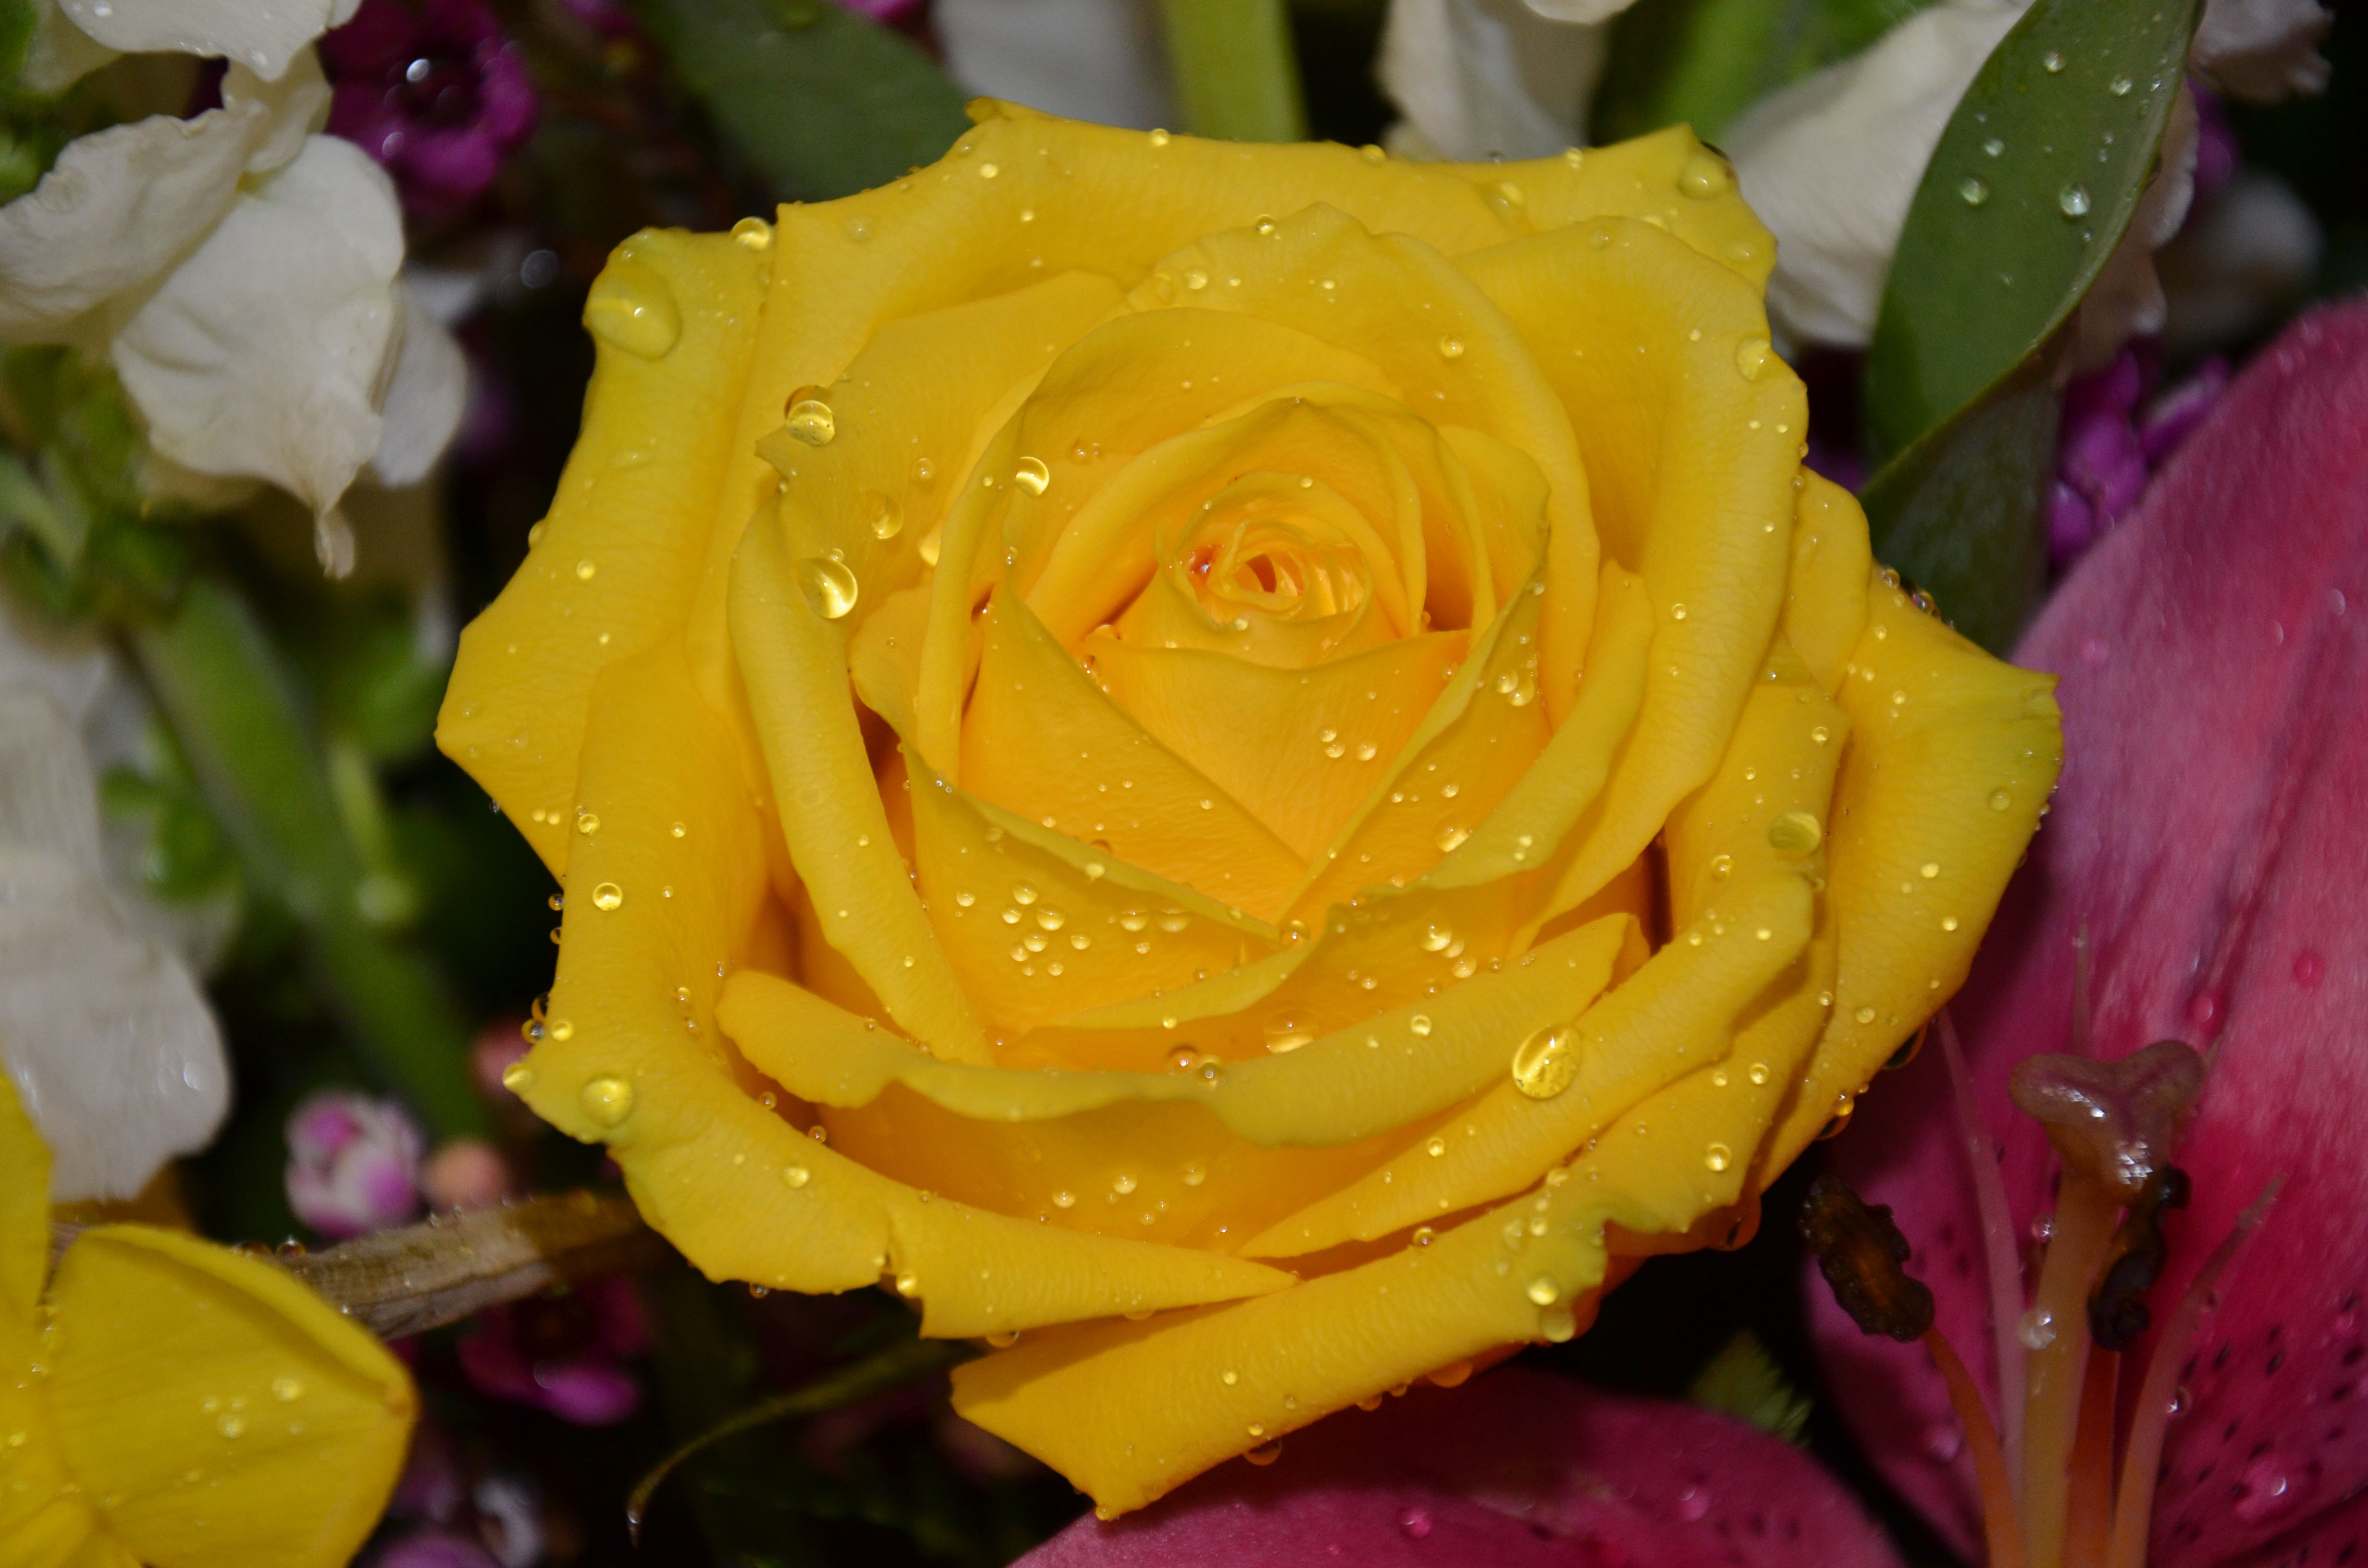 Yellow Rose with Droplets